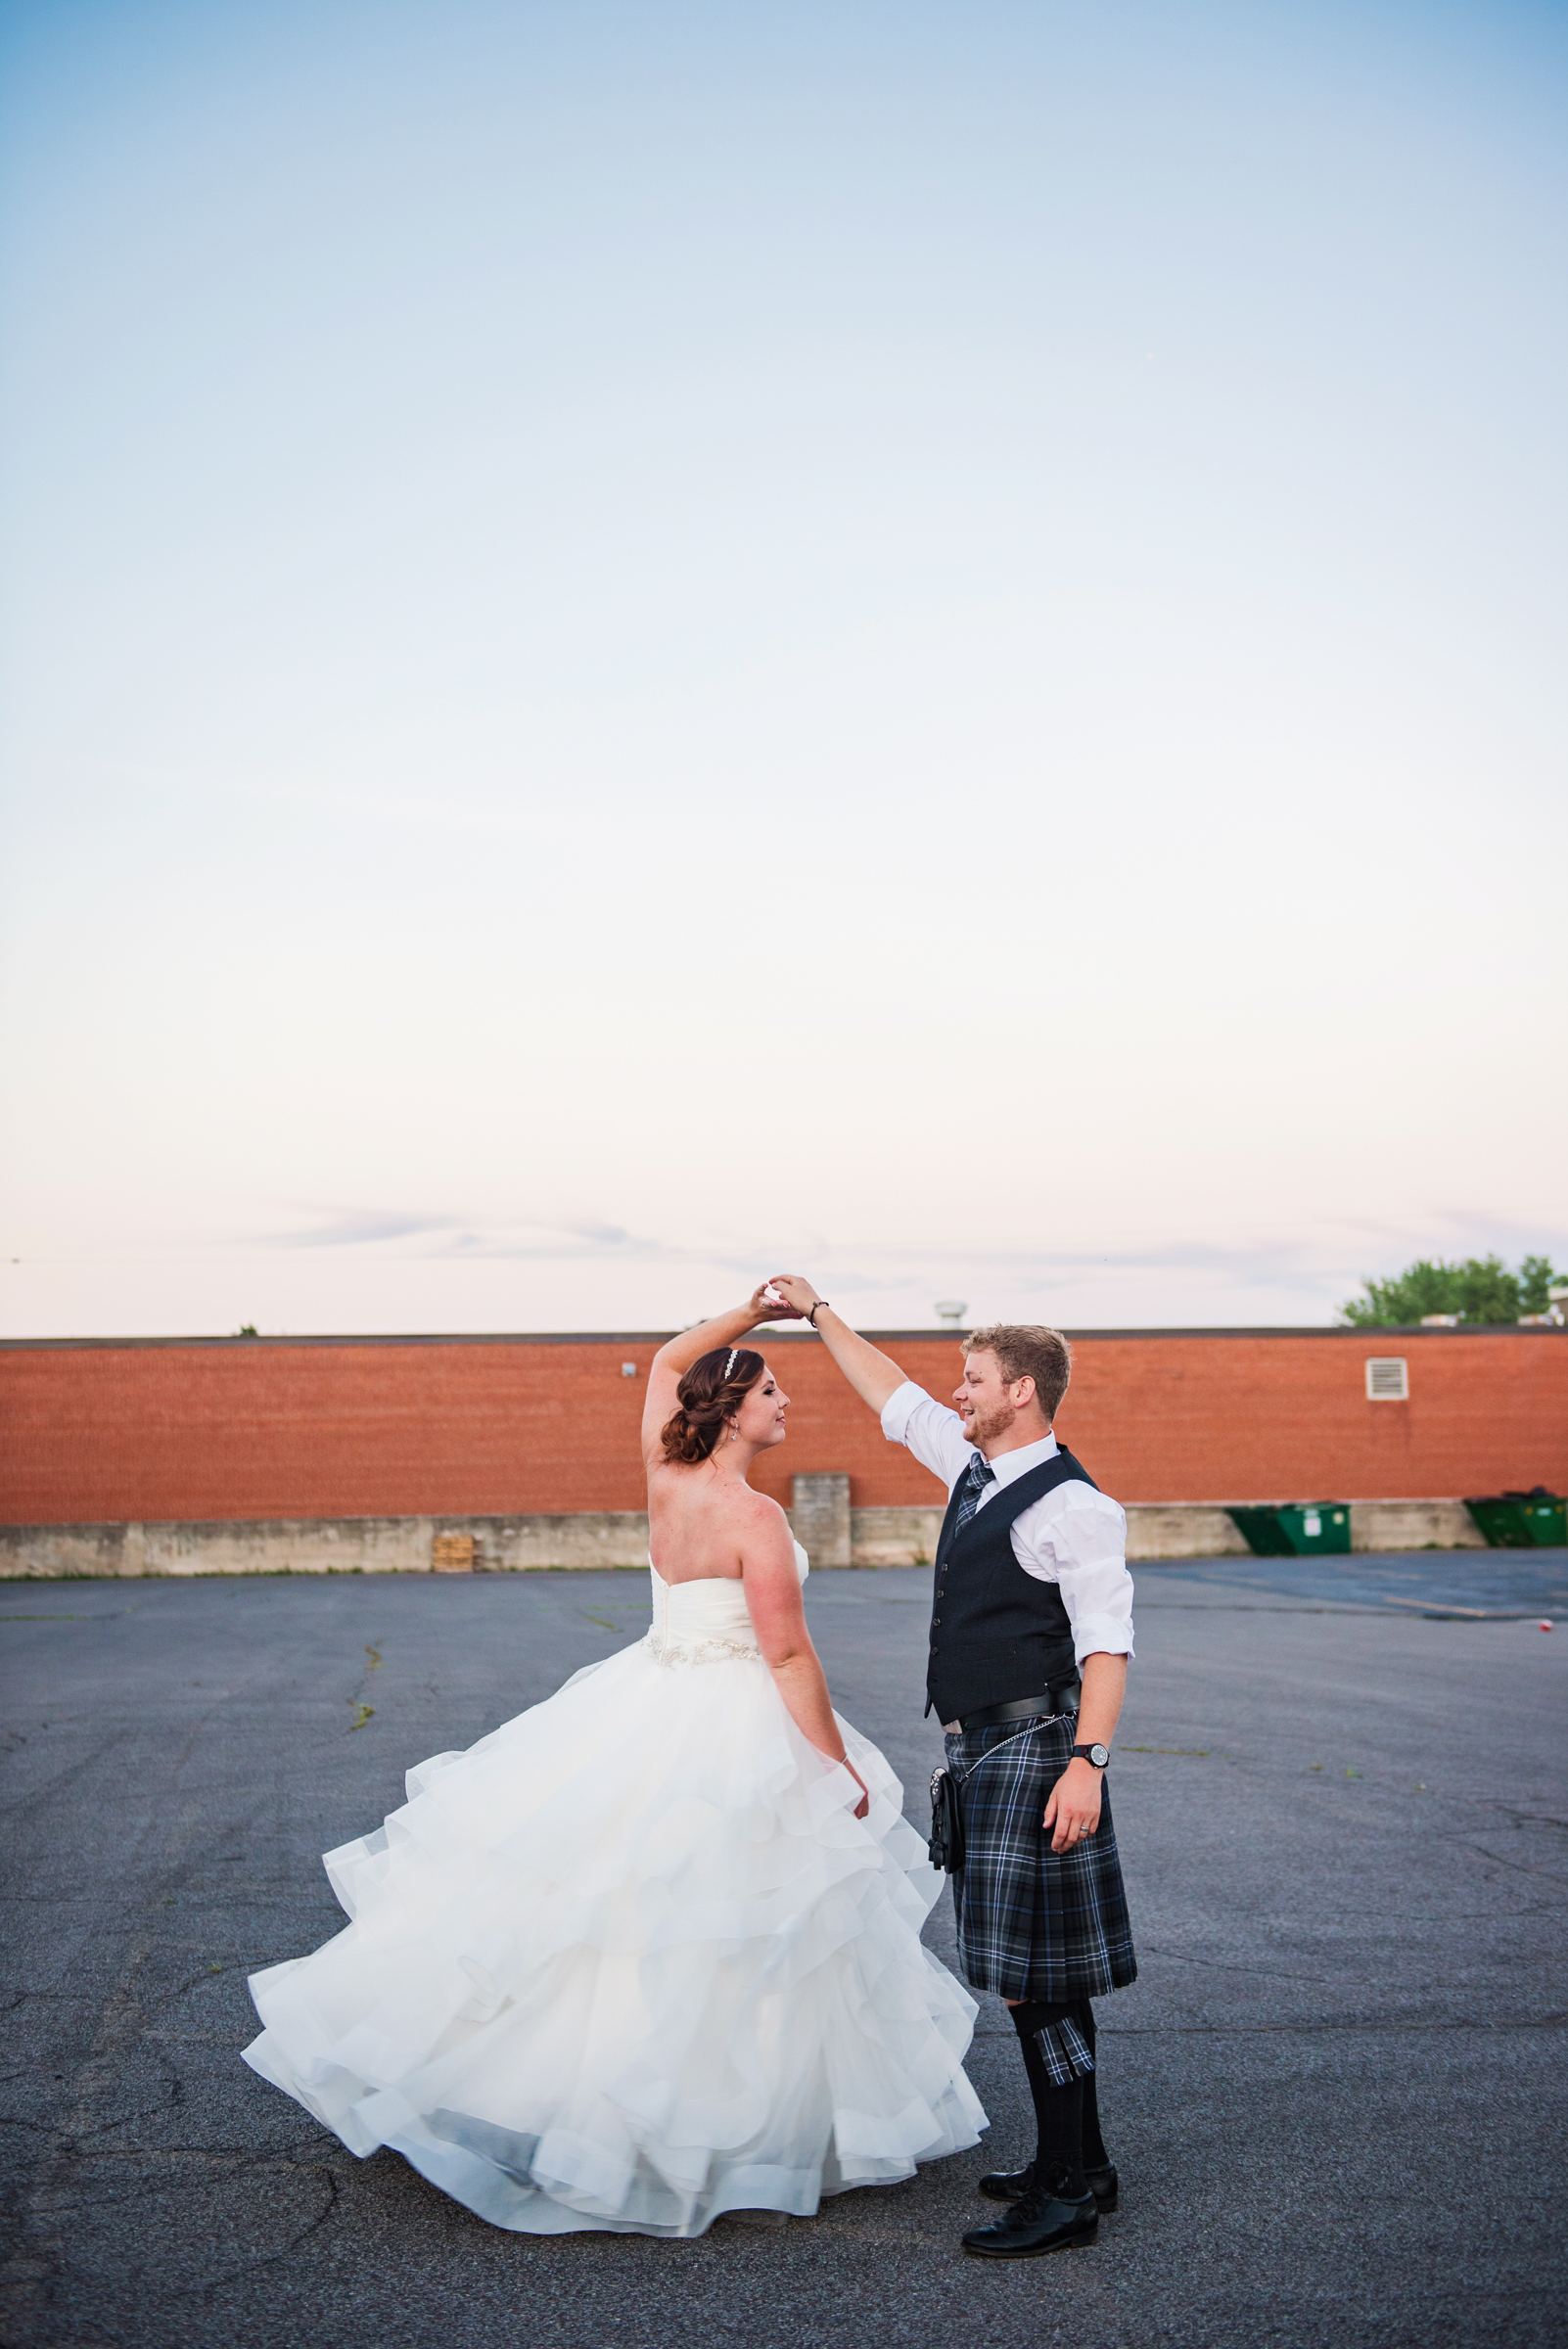 JILL_STUDIO_Wedding_JILL_STUDIO_Rochester_NY_Photographer_10-DSC_7802.jpg